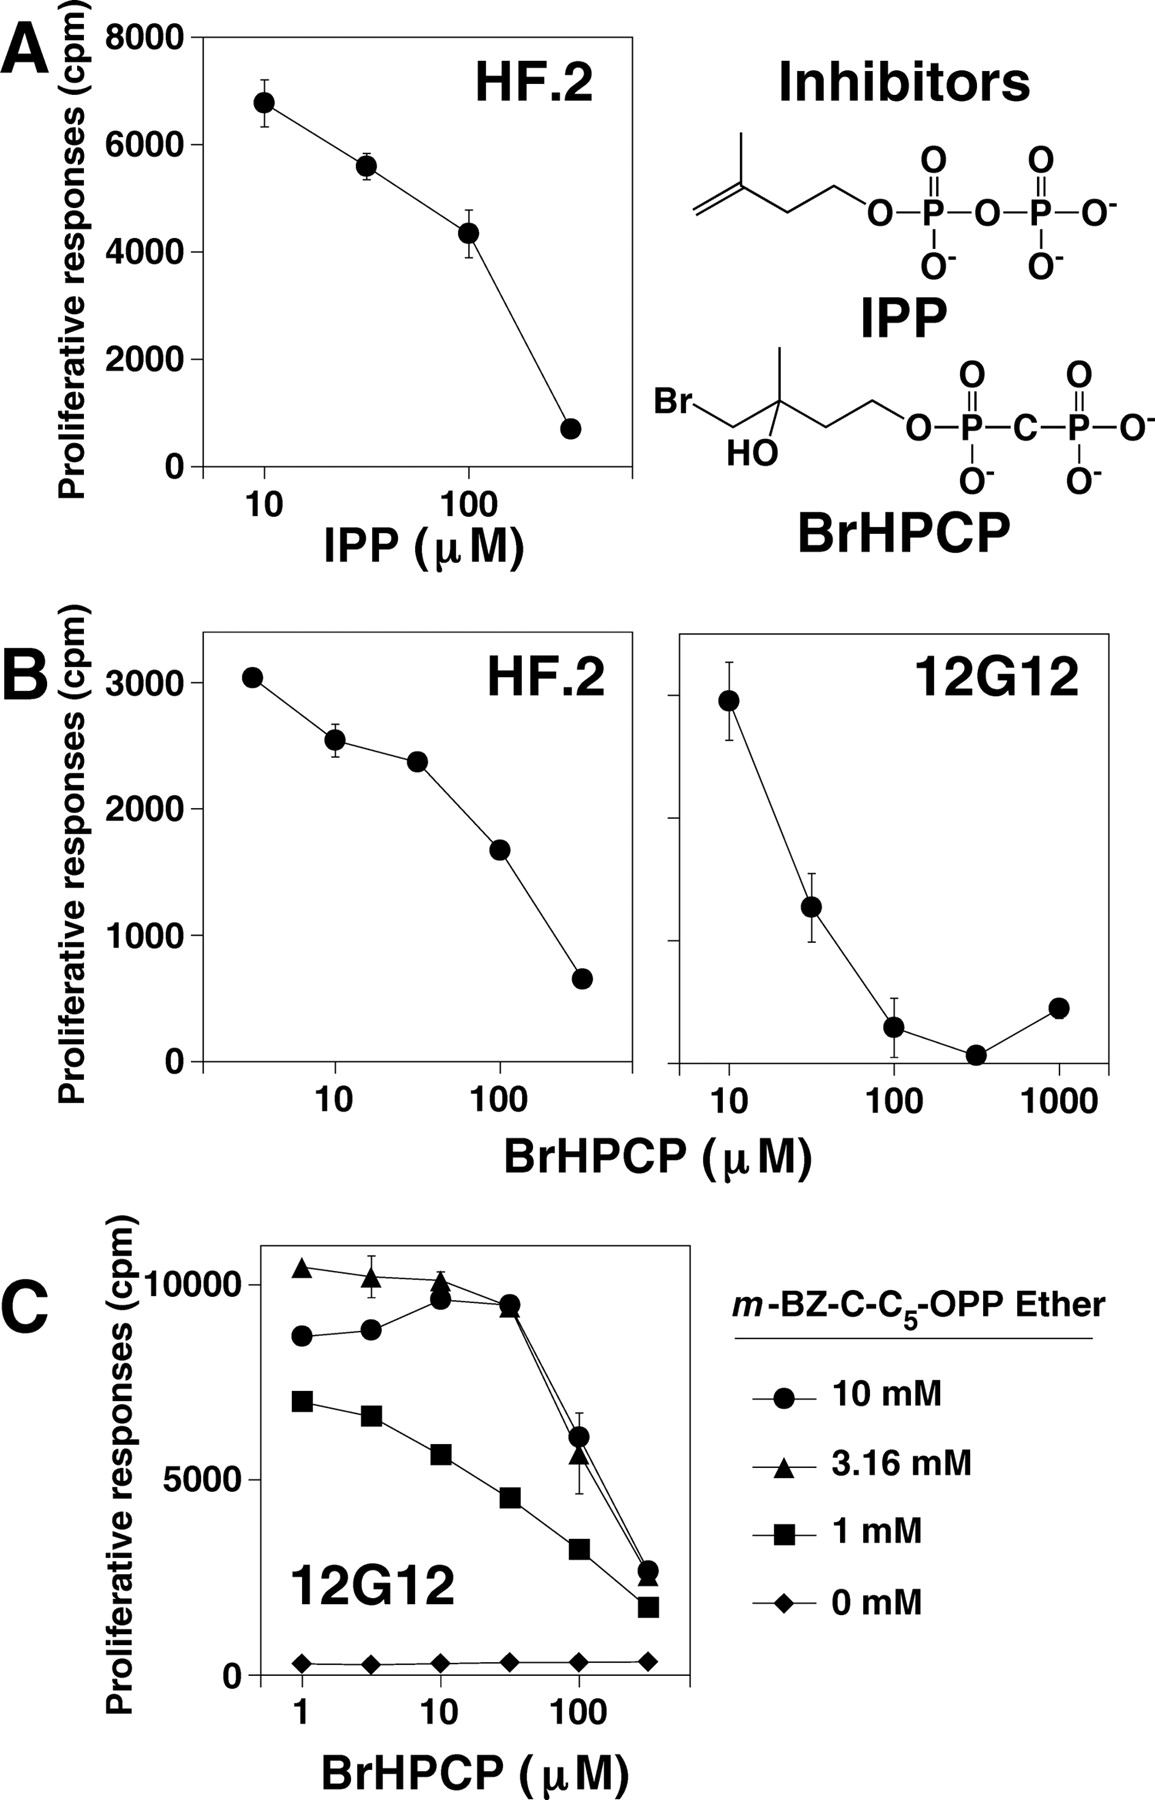 Brander Gamma Photoaffinity Antigens For Human γδ T Cells The Journal Of